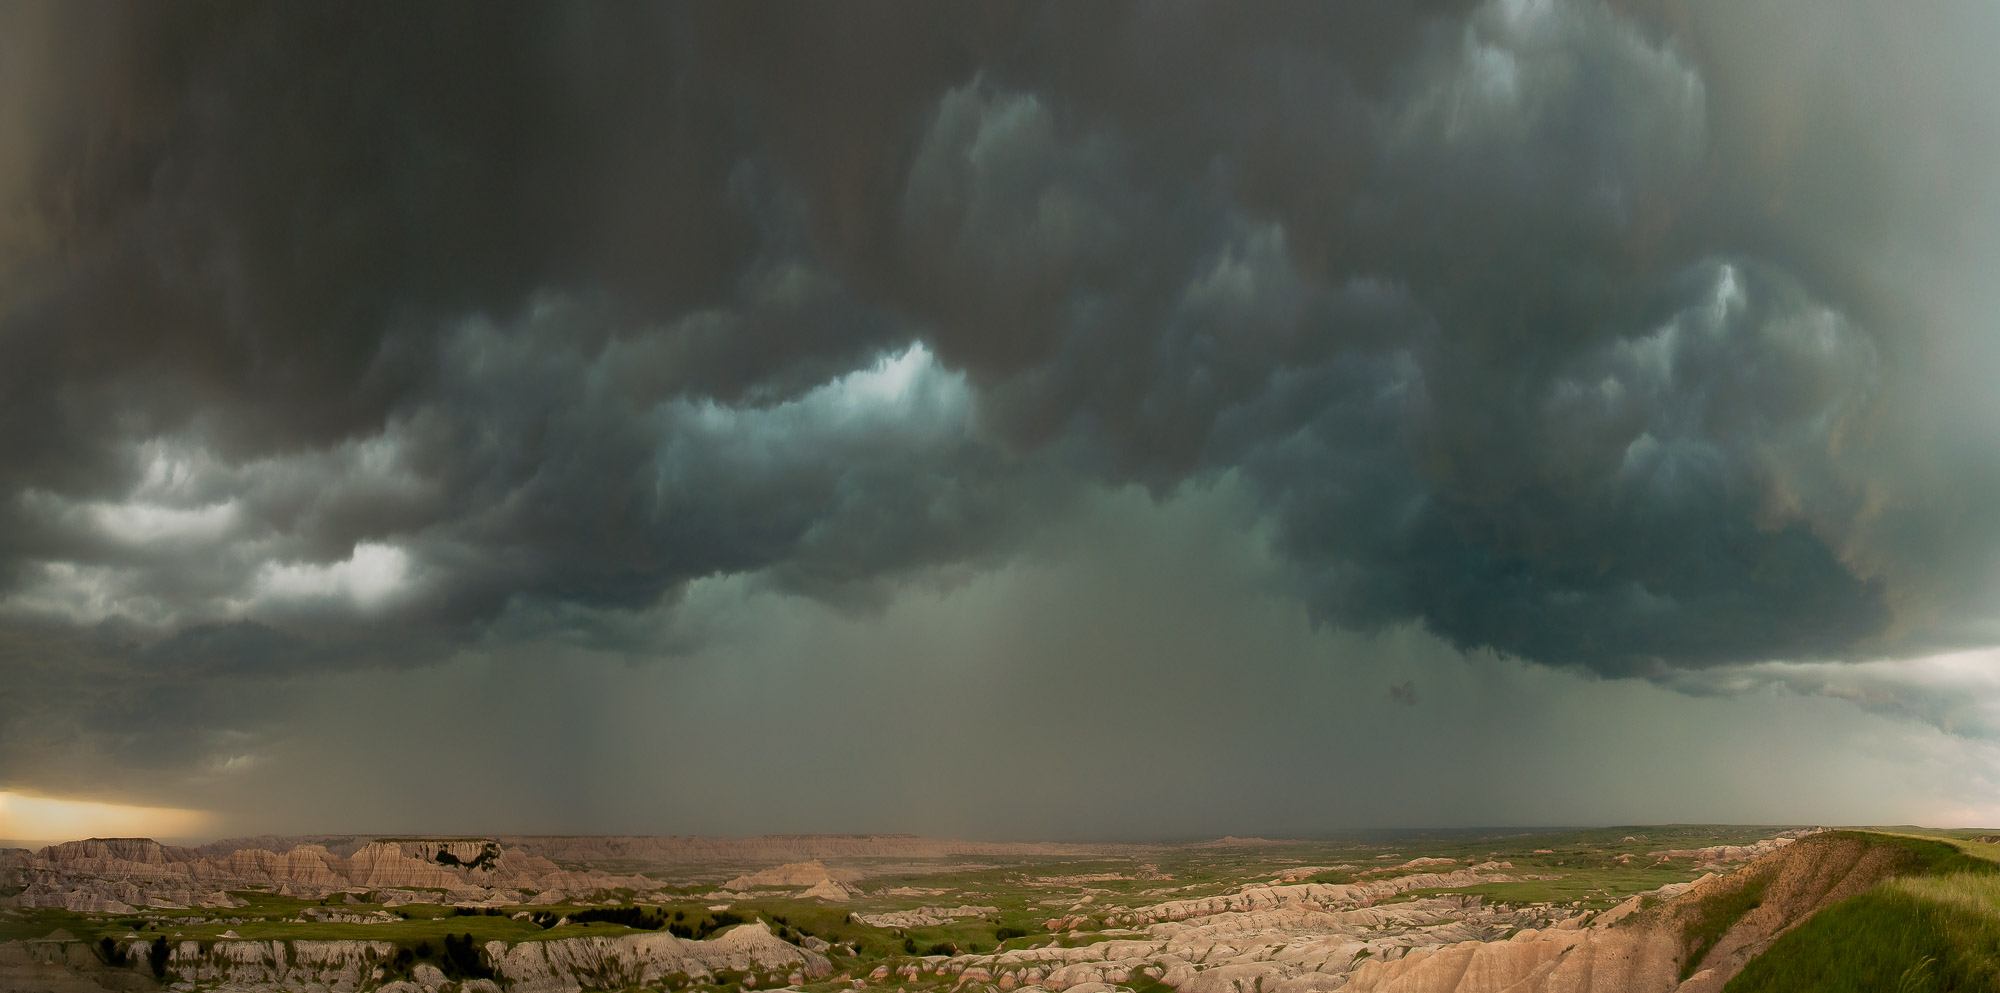 Squall line - Badlands National Park, South Dakota